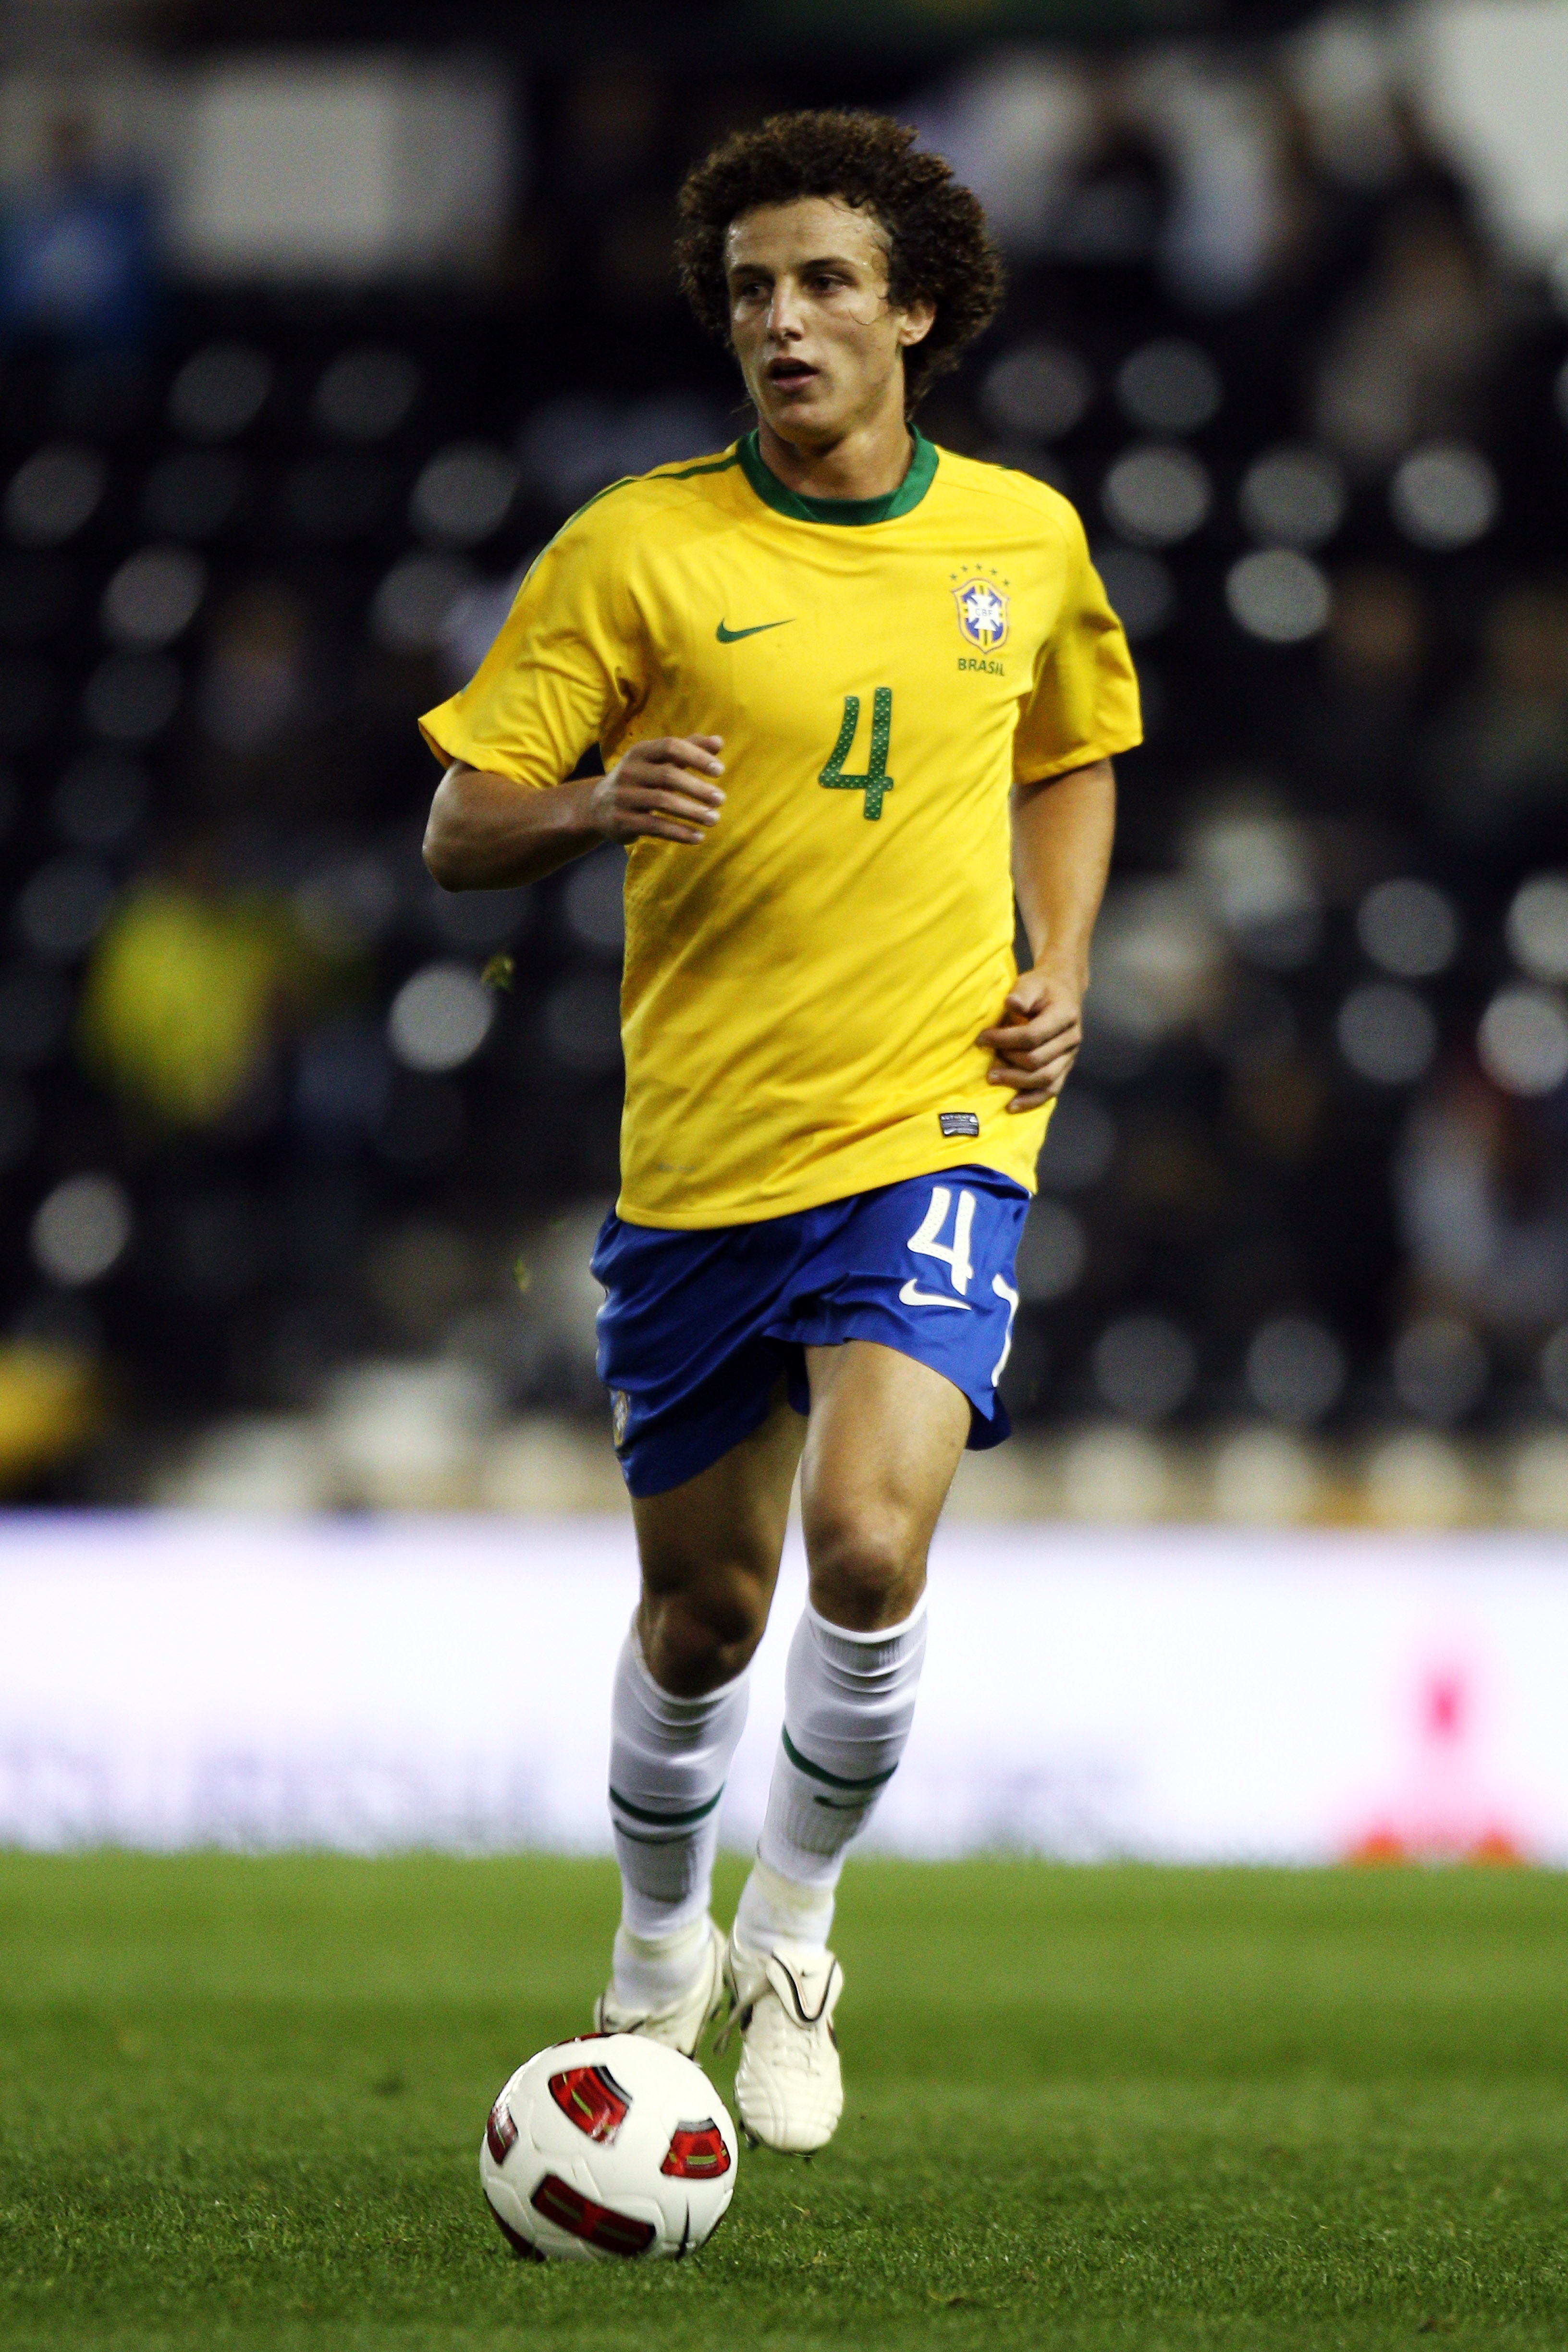 DERBY, ENGLAND - OCTOBER 11:  David Luiz of Brazil in action during the International Friendly match between Brazil and Ukraine at Pride Park Stadium on October 11, 2010 in Derby, England.  (Photo by Dean Mouhtaropoulos/Getty Images)